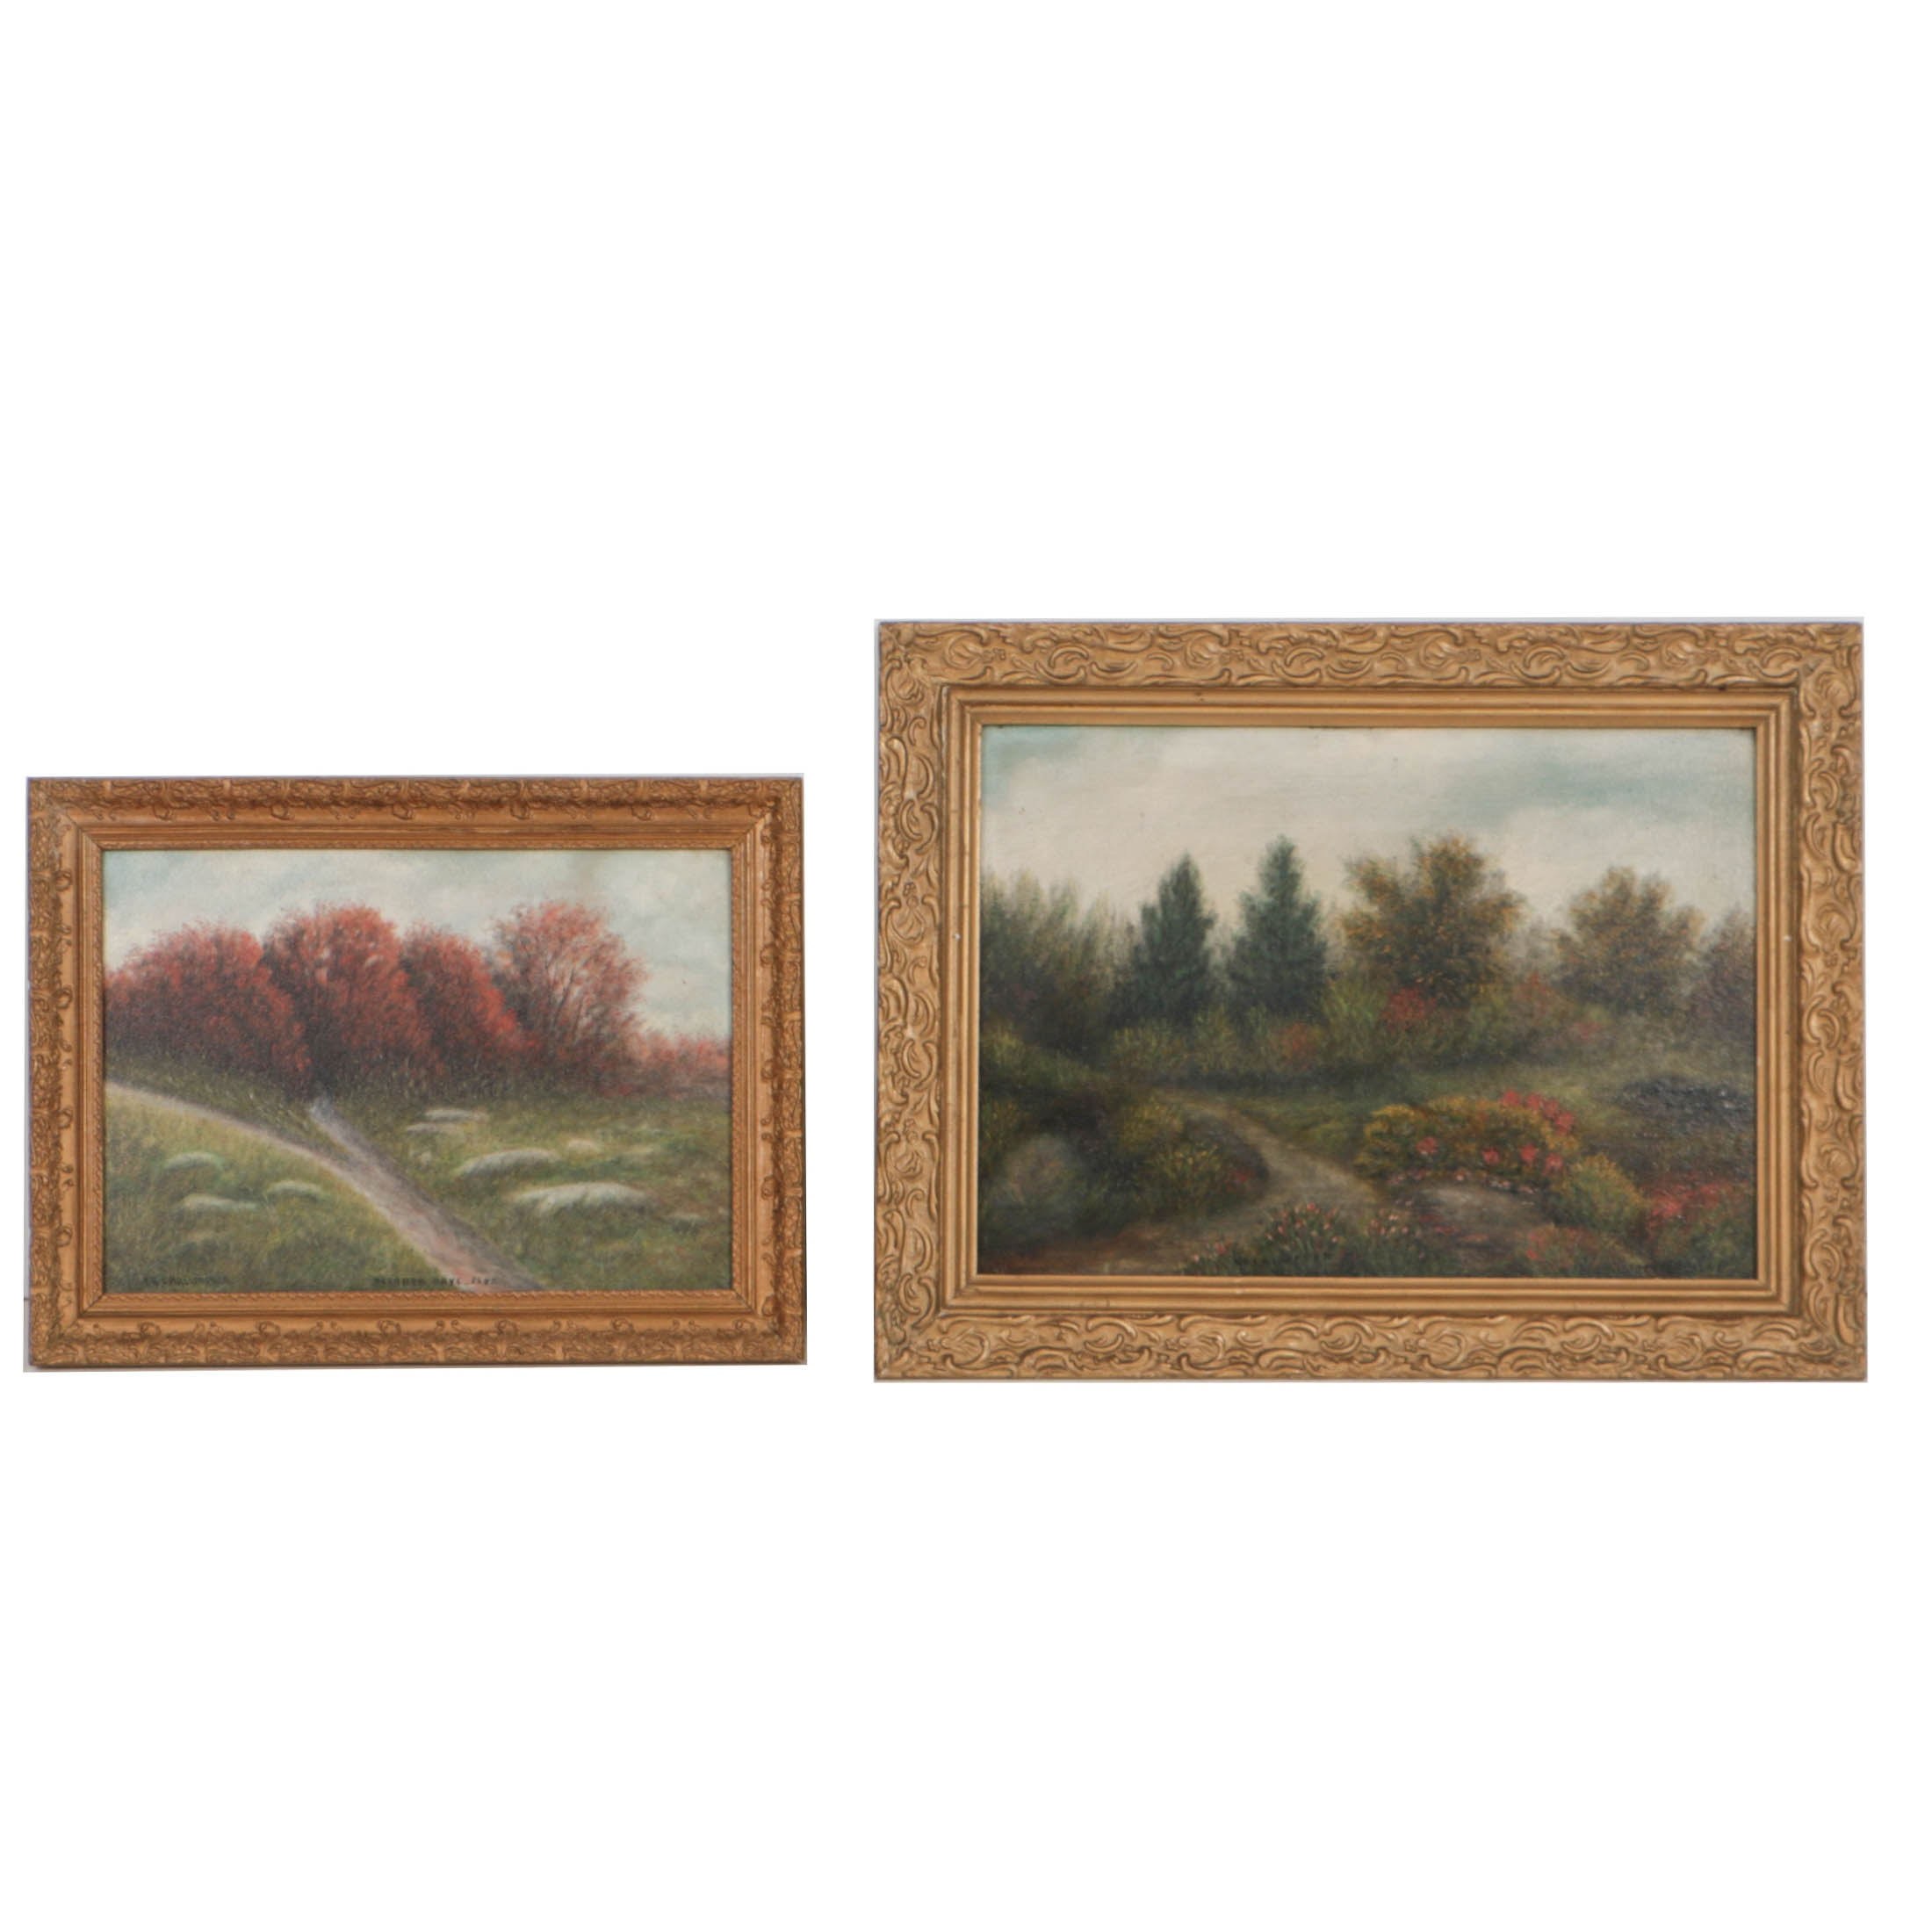 Two Irvin Christopher Oil Paintings on Board of Impressionistic Ohio Landscapes